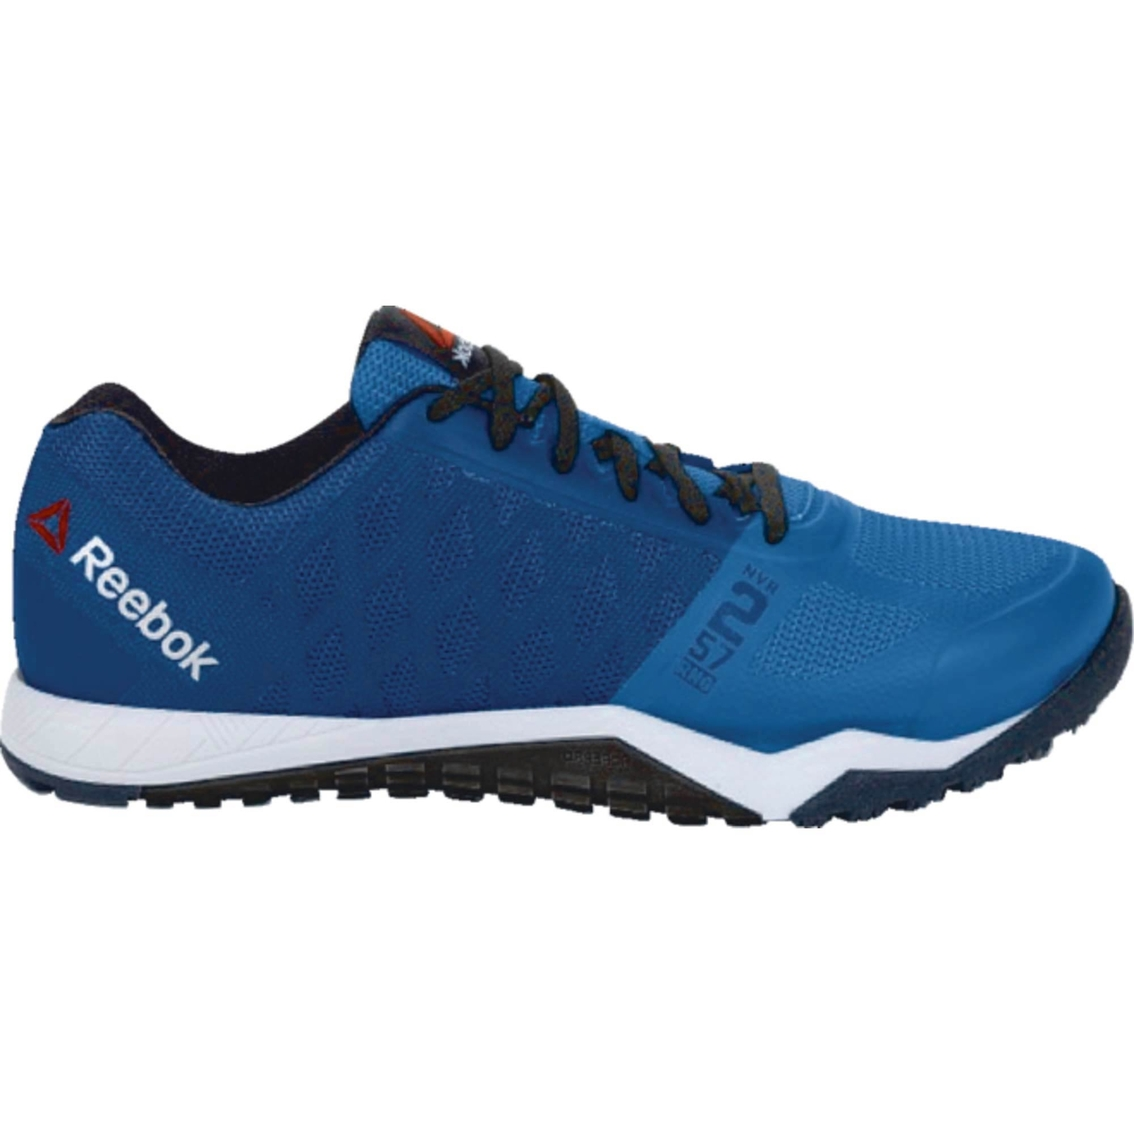 af33b083bedc82 Reebok Men s Ros Workout Cross Training Shoes